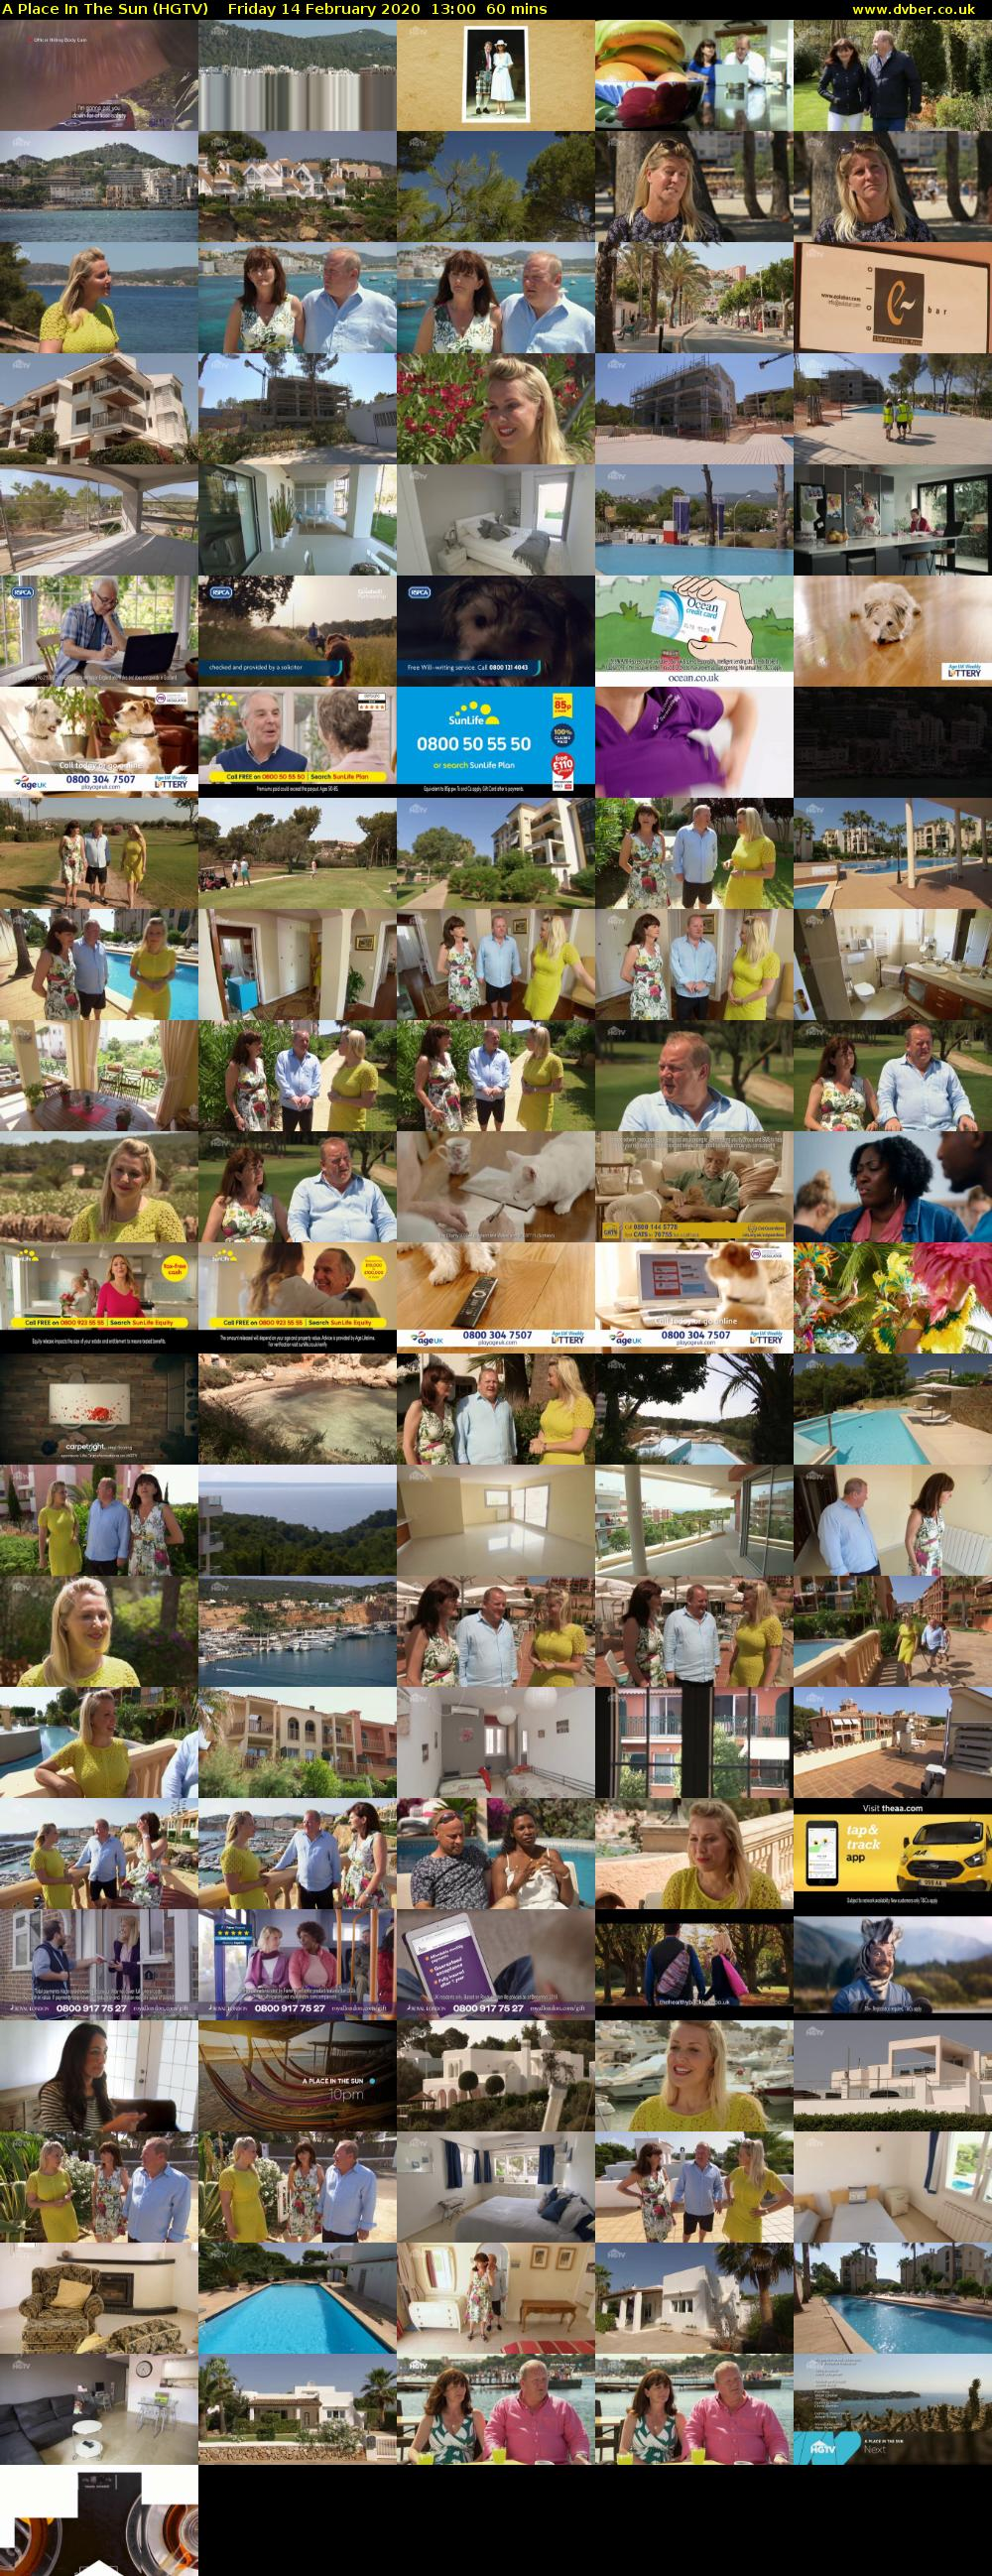 A Place In The Sun (HGTV) Friday 14 February 2020 13:00 - 14:00